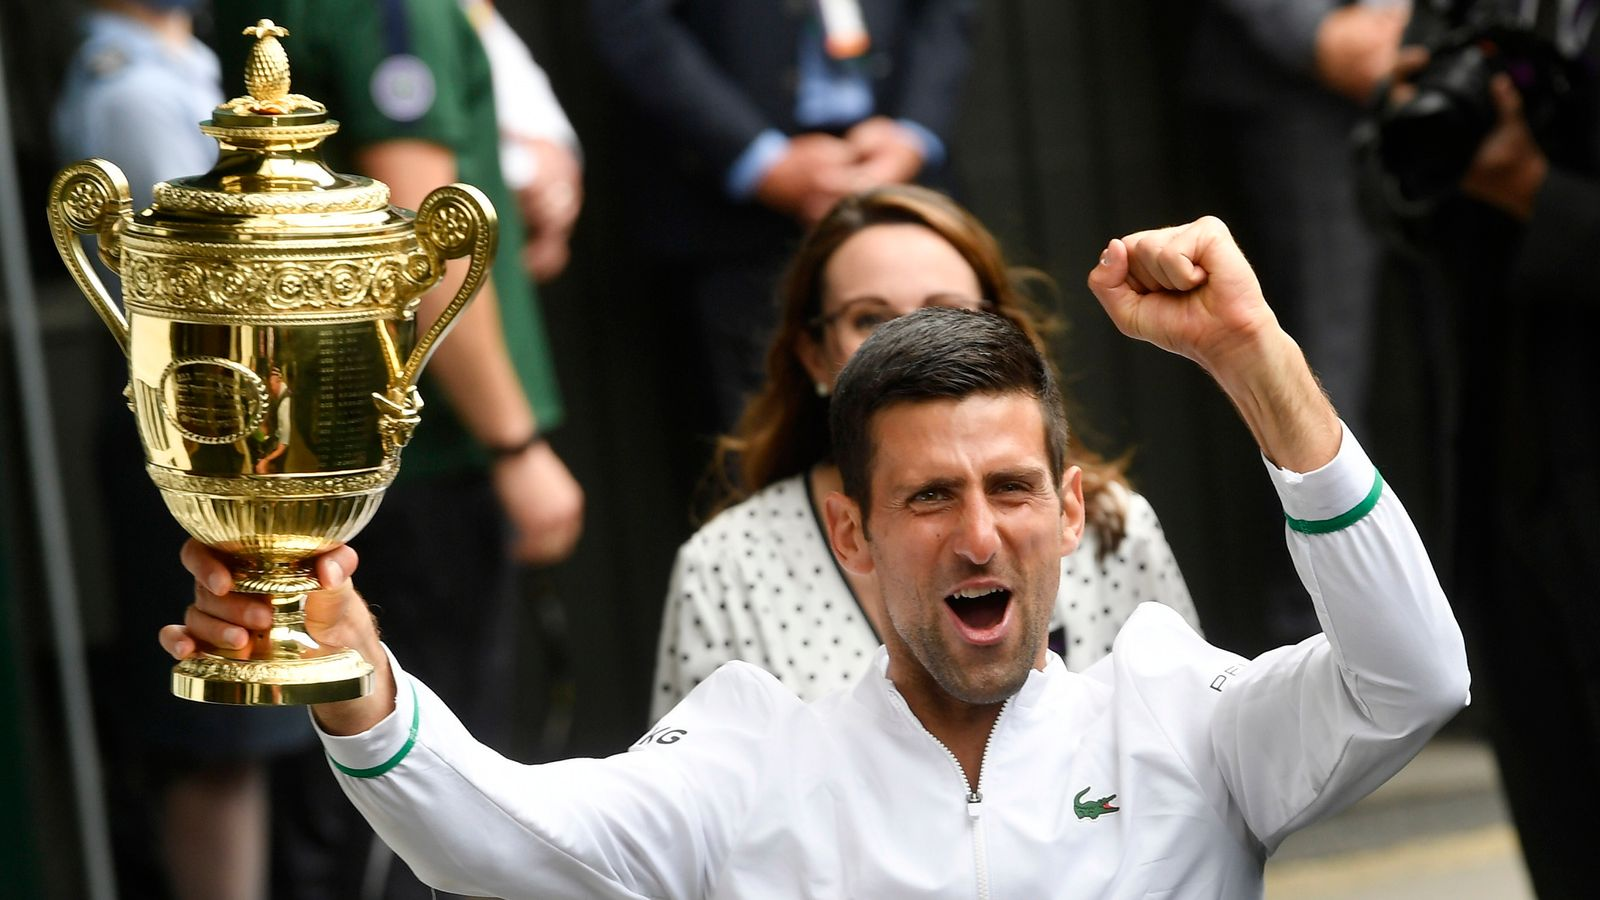 Djokovic wins Wimbledon to match Federer and Nadal's record 20 major titles